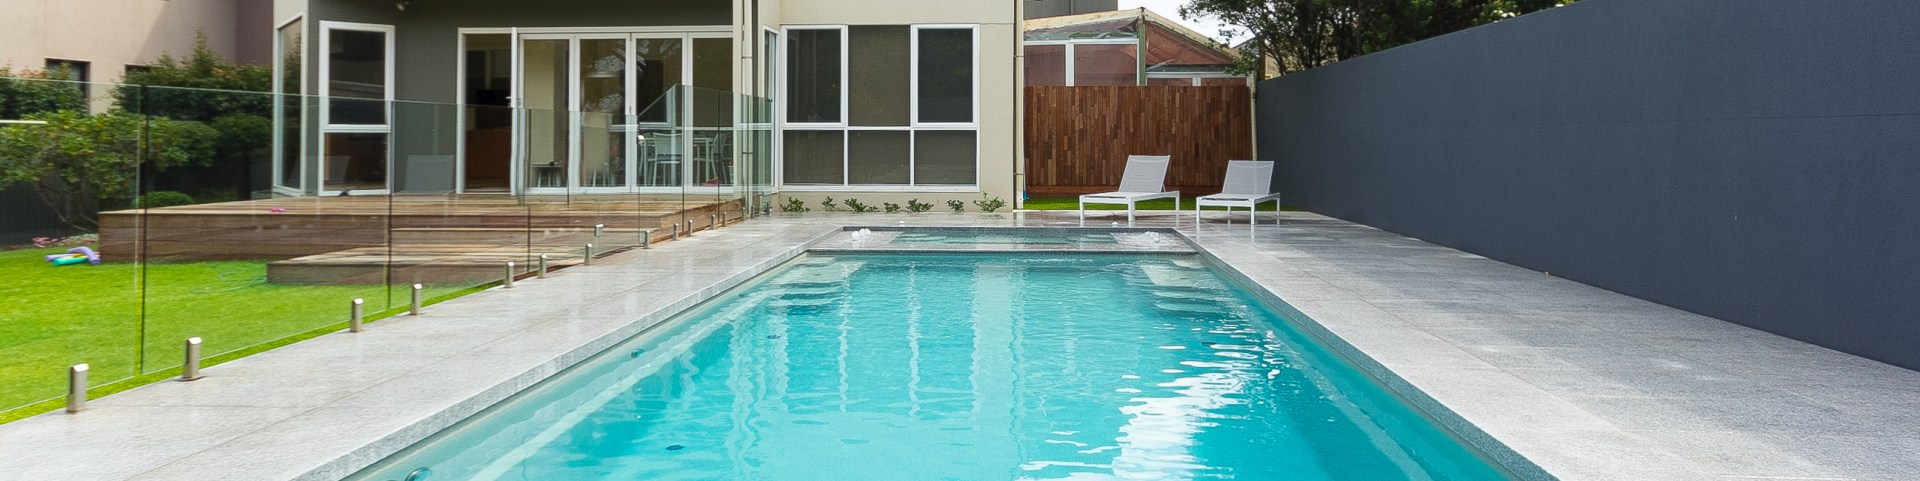 How much will my pool cost? - Local Pools And Spas